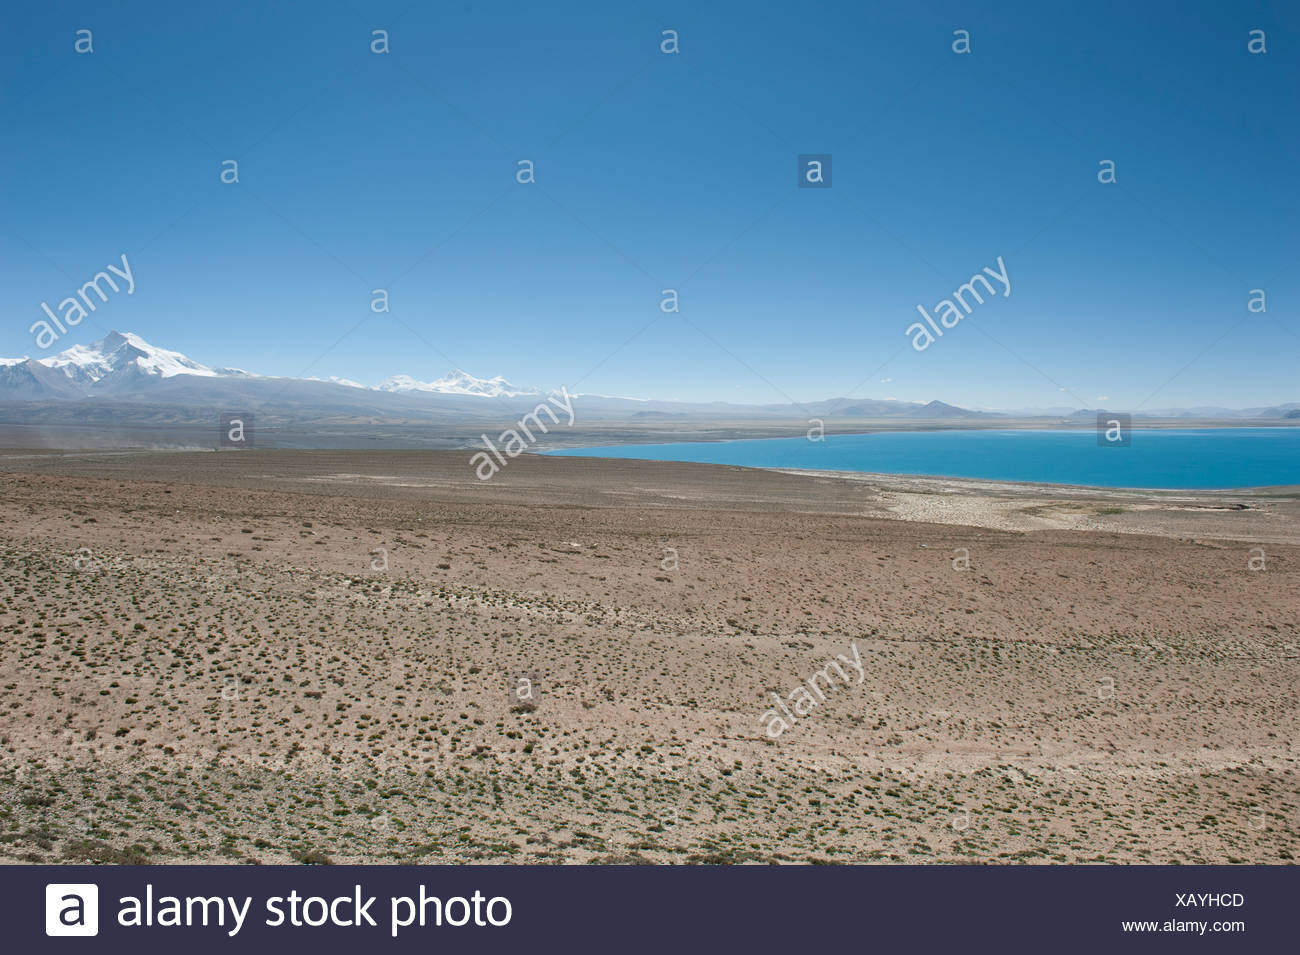 Endless wide landscape, Lake Pelku Tso, high-level, behind Mt. Shishapangma, Himalayan, central Tibet, U-Tsang - Stock Image